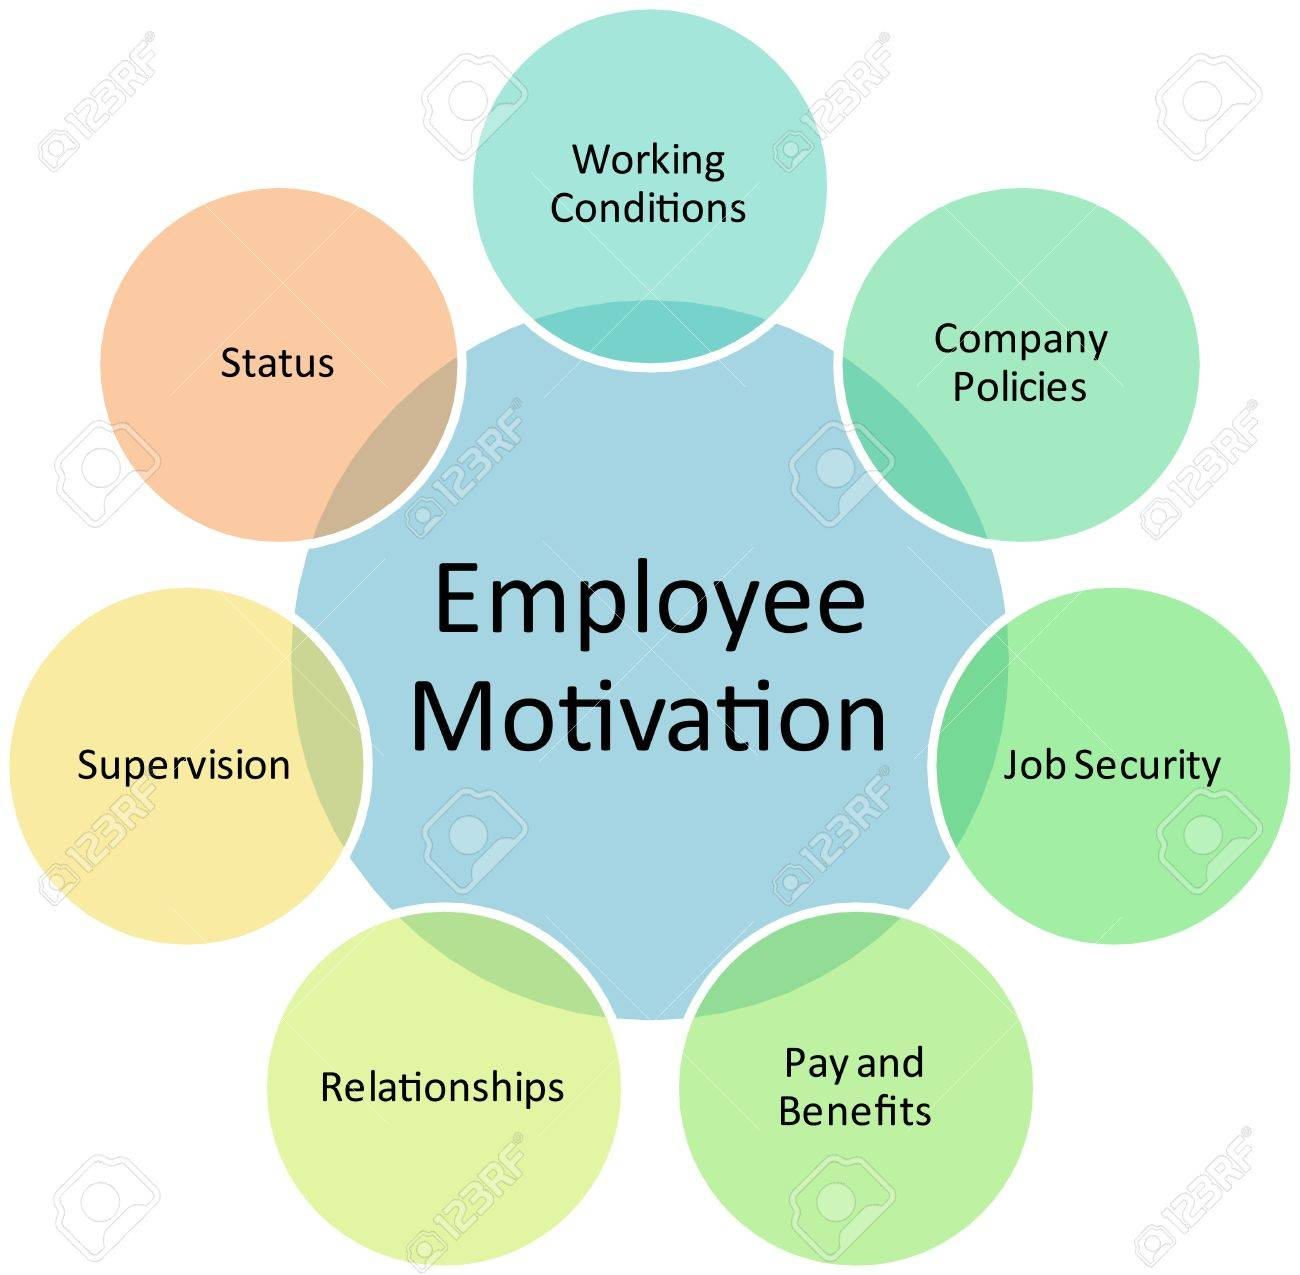 employee motivation in the workplace essay